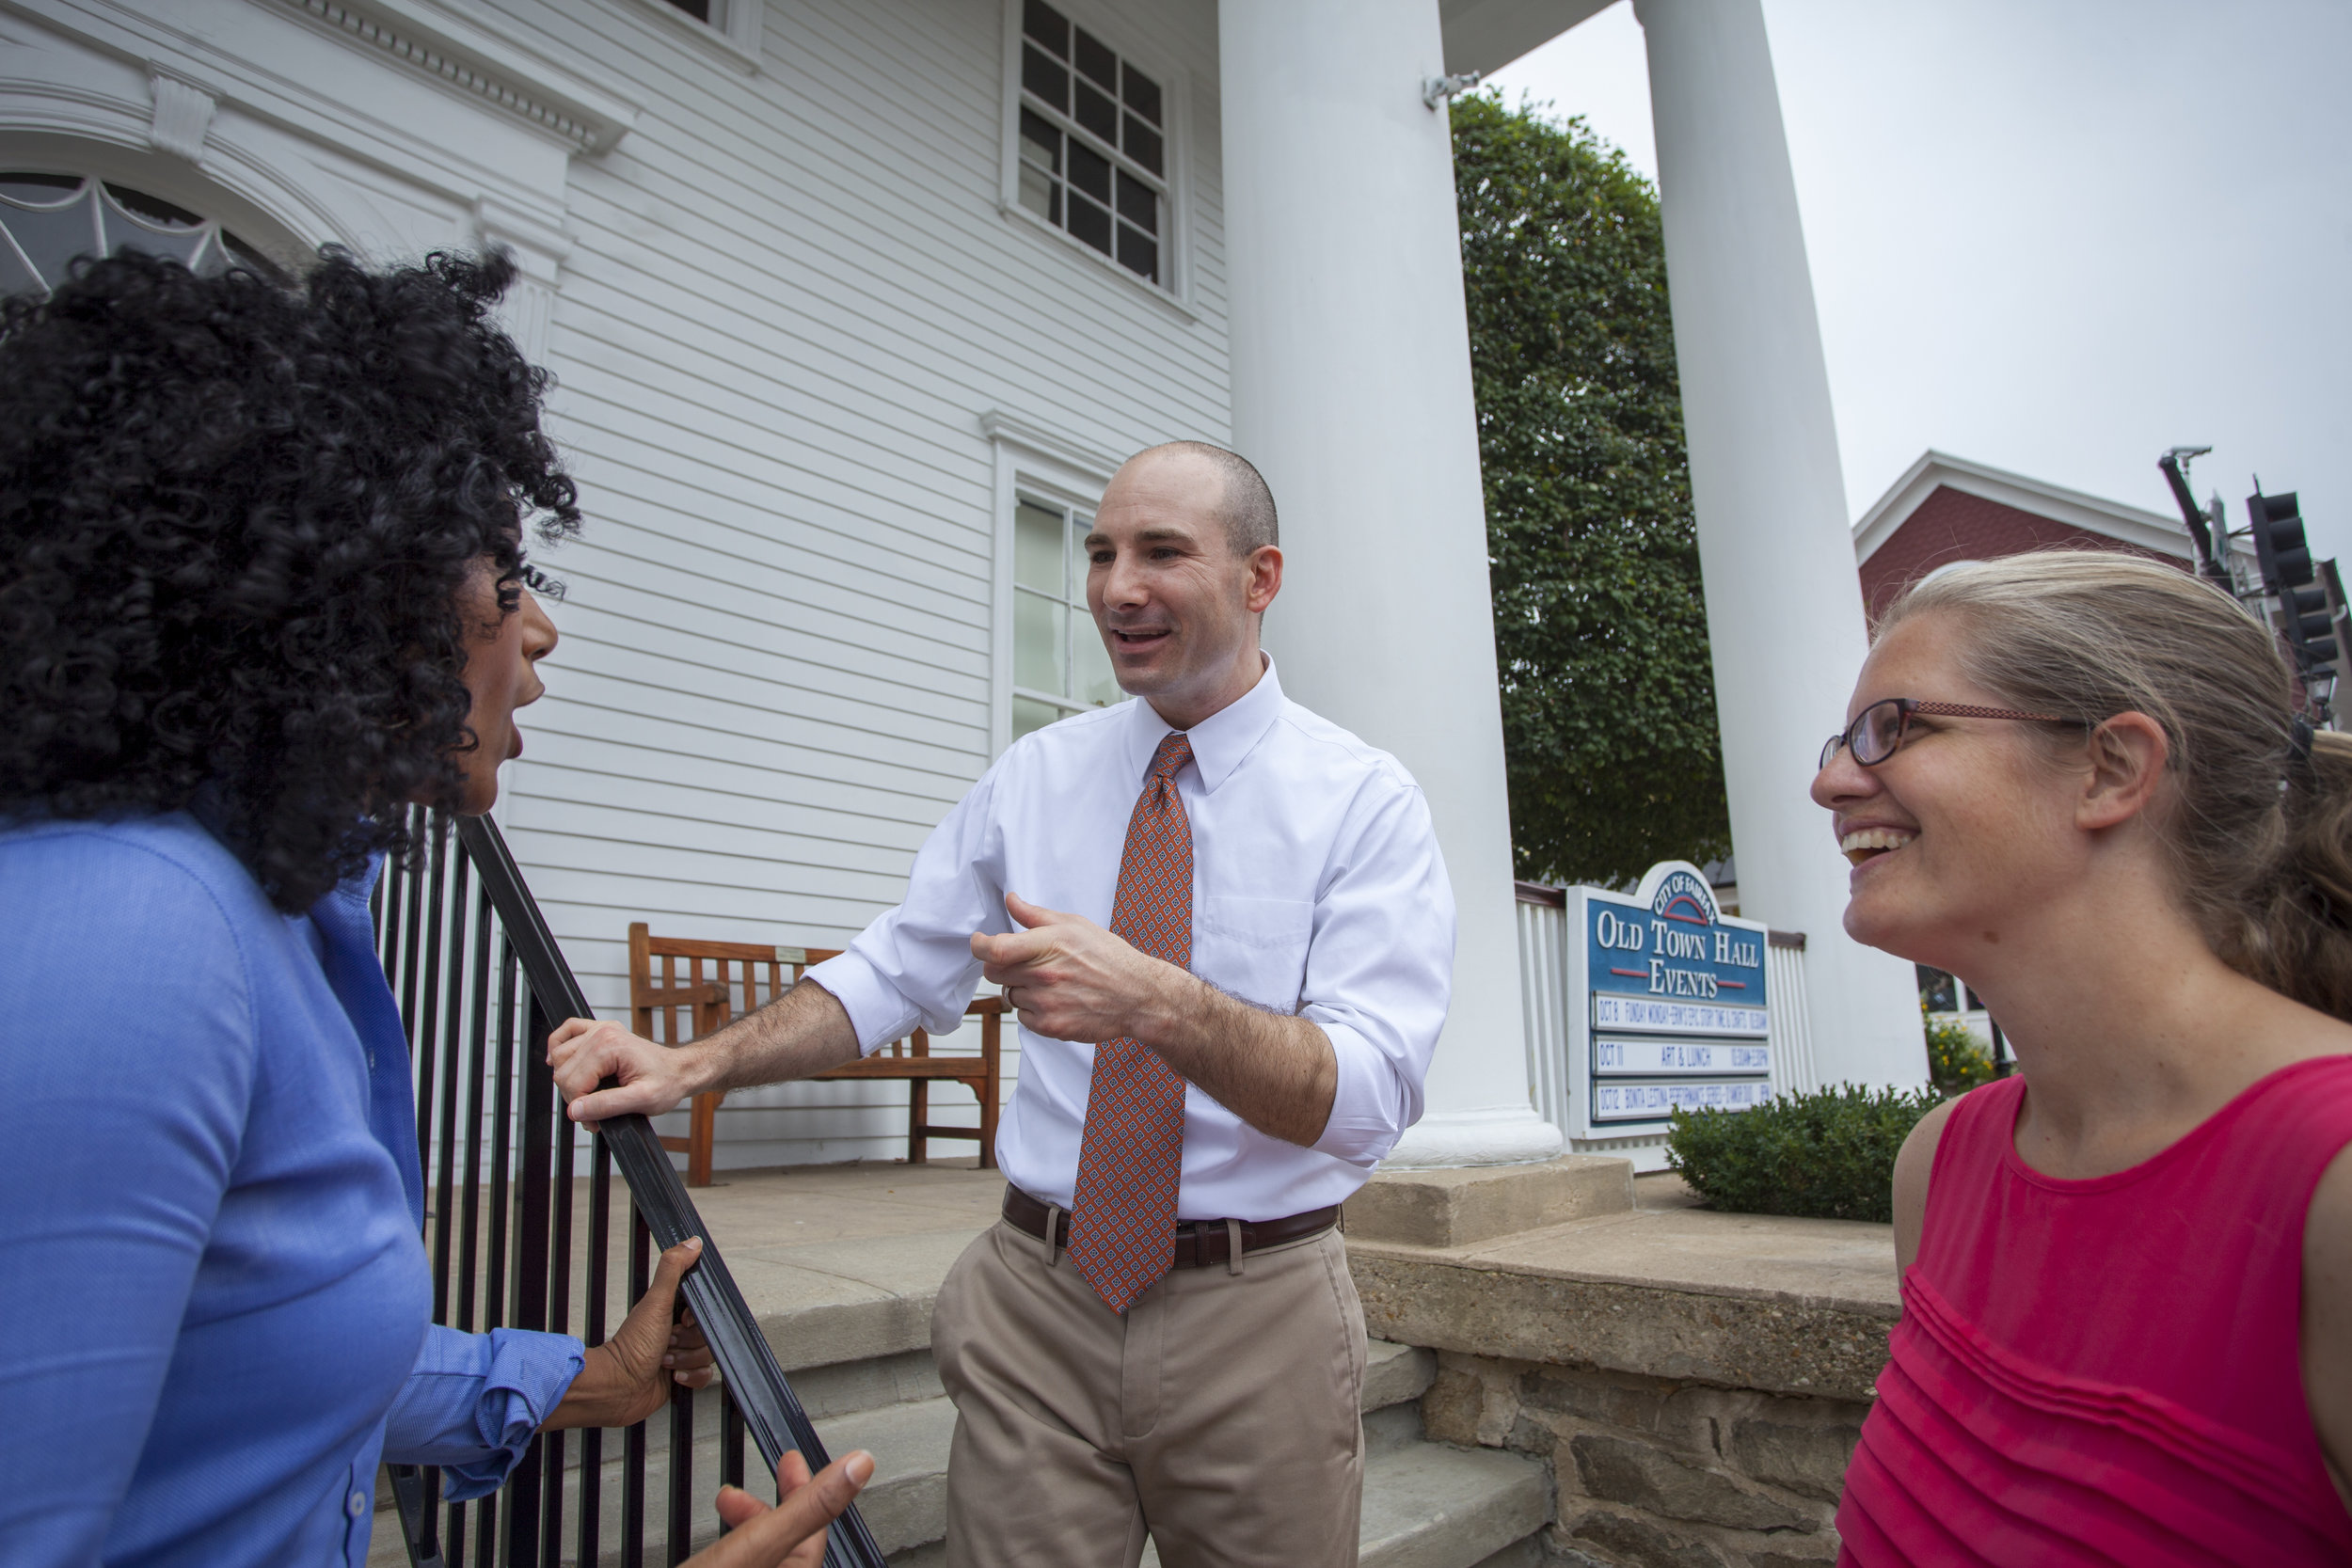 Steve in downtown Fairfax with supporters